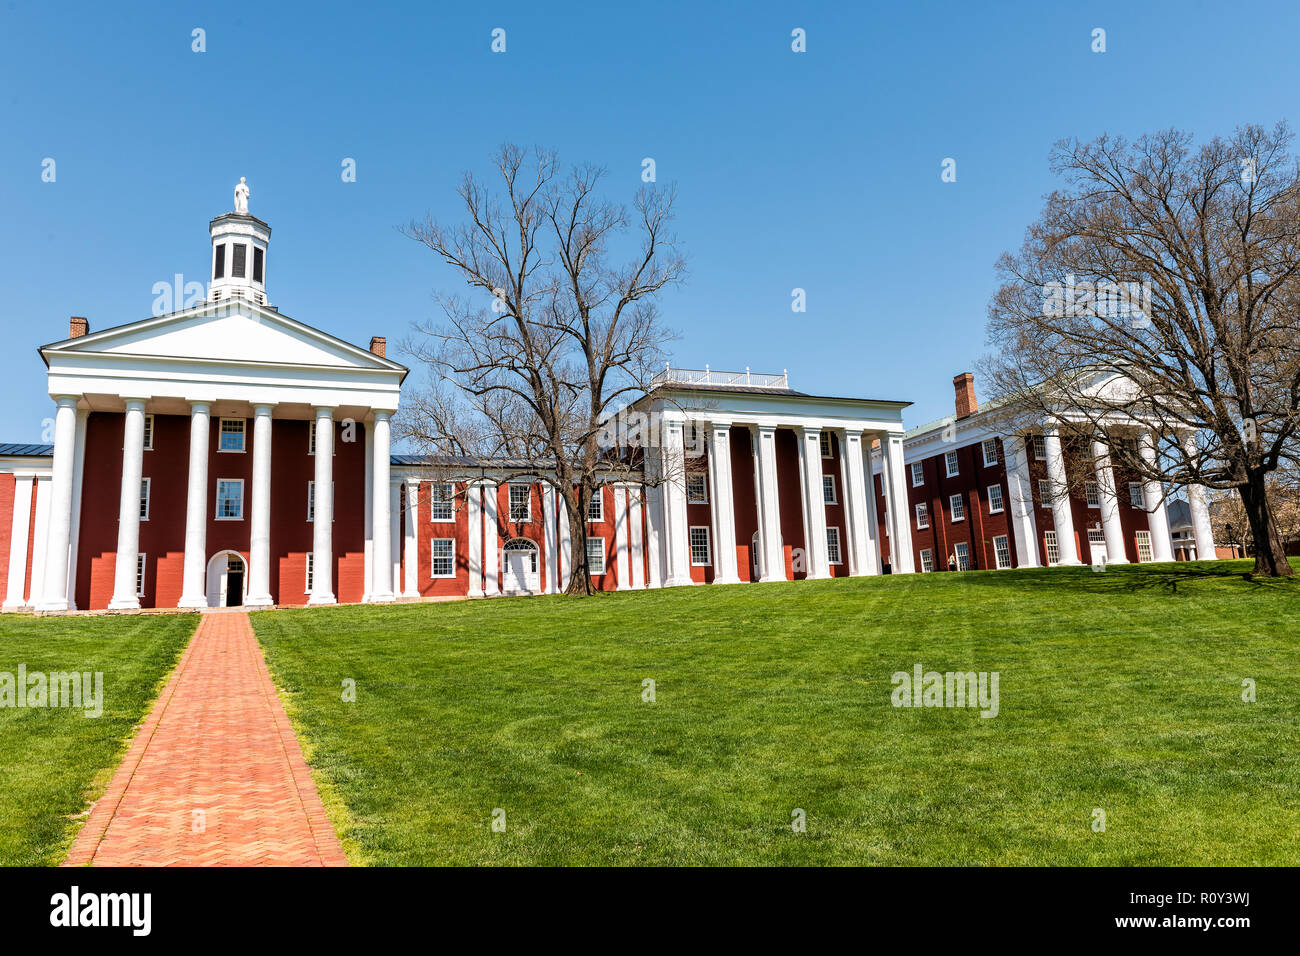 Lexington, USA - April 18, 2018: Washington and Lee University hall in Virginia exterior facade during sunny day exterior orange brick architecture - Stock Image